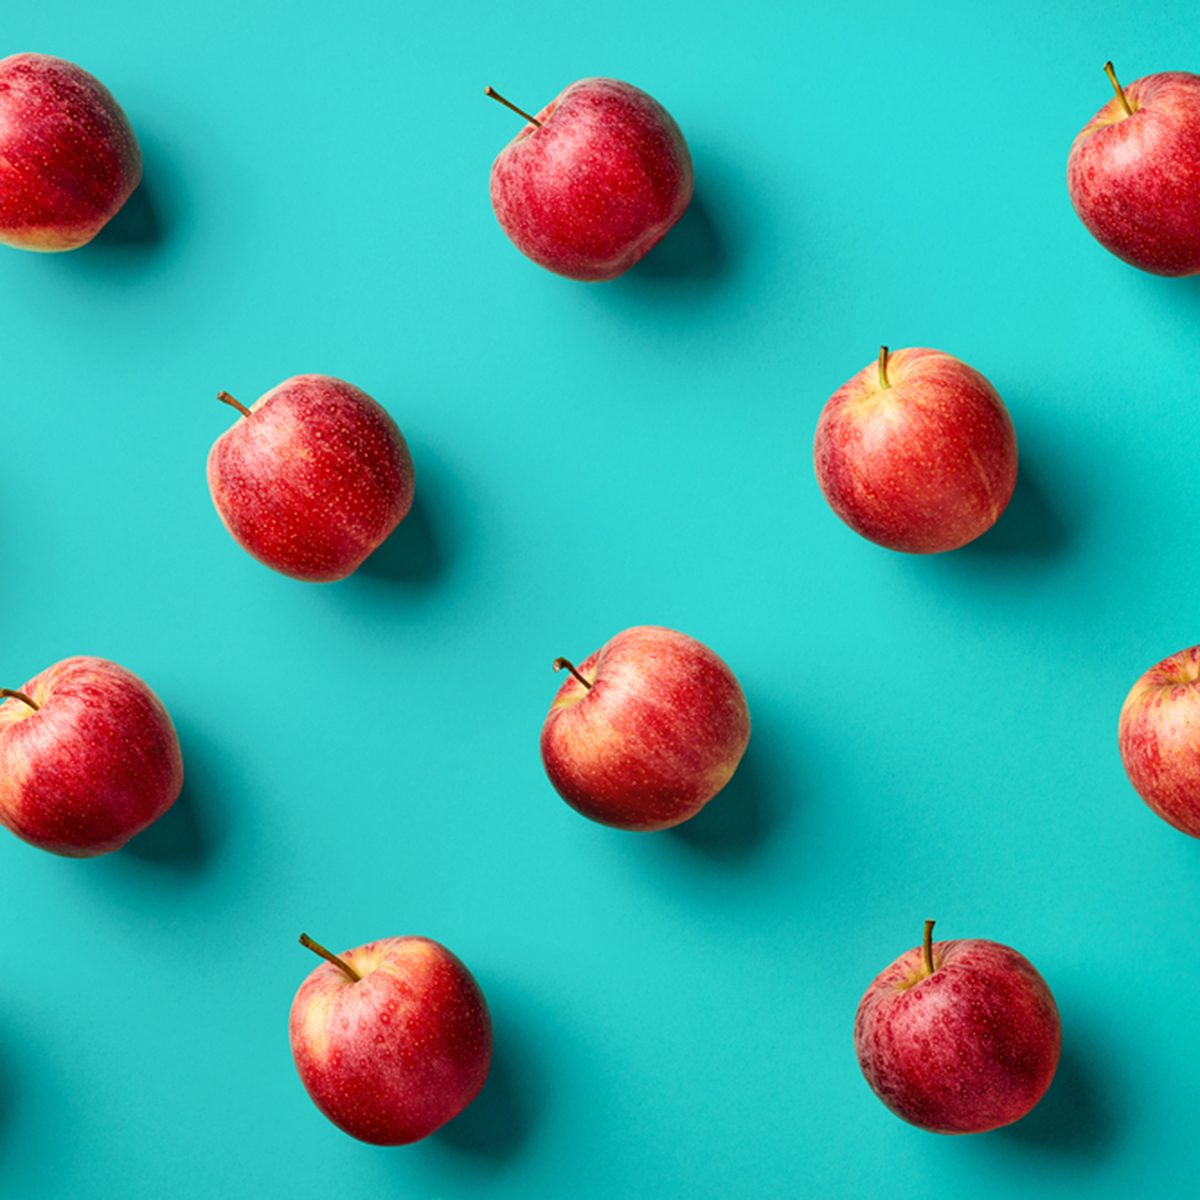 Colorful fruit pattern of fresh red apples on blue background.